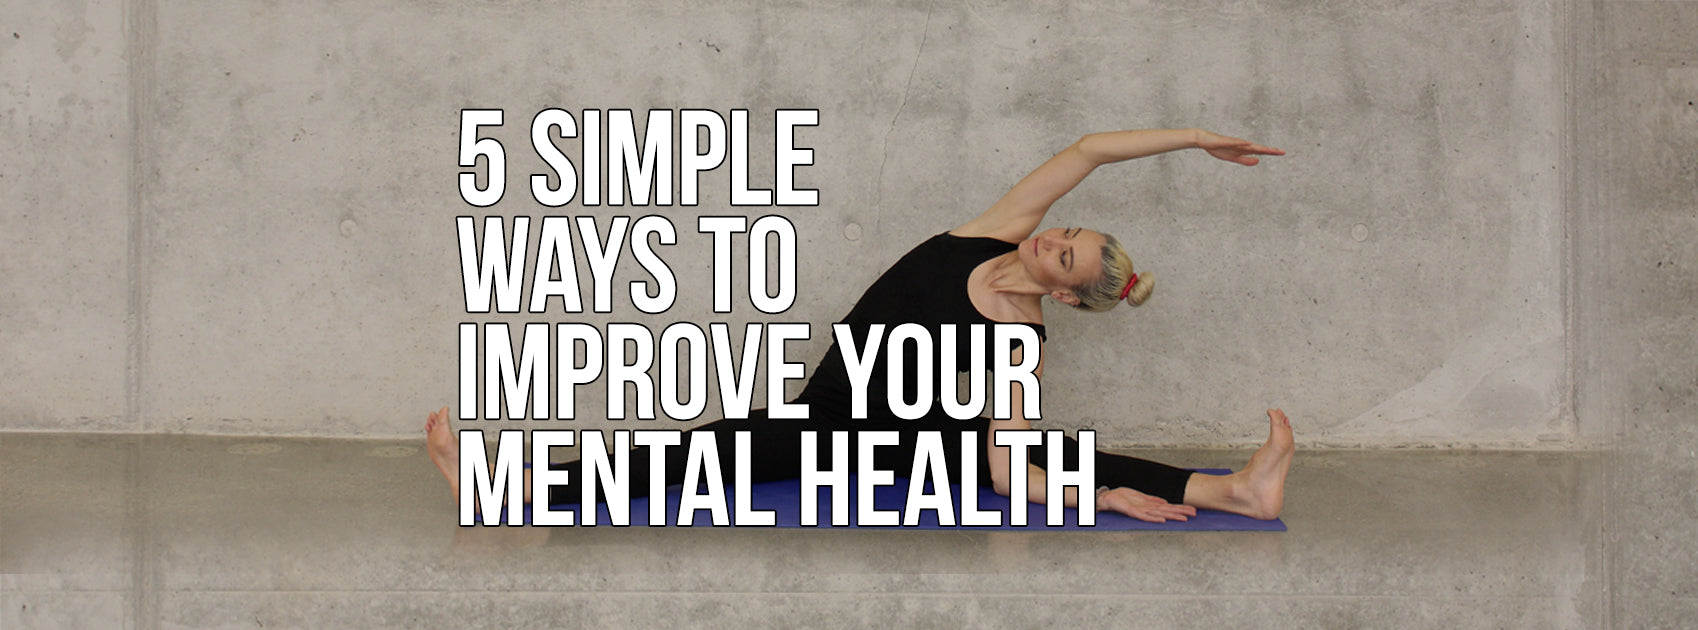 5 Simple Ways To Improve Your Mental Health